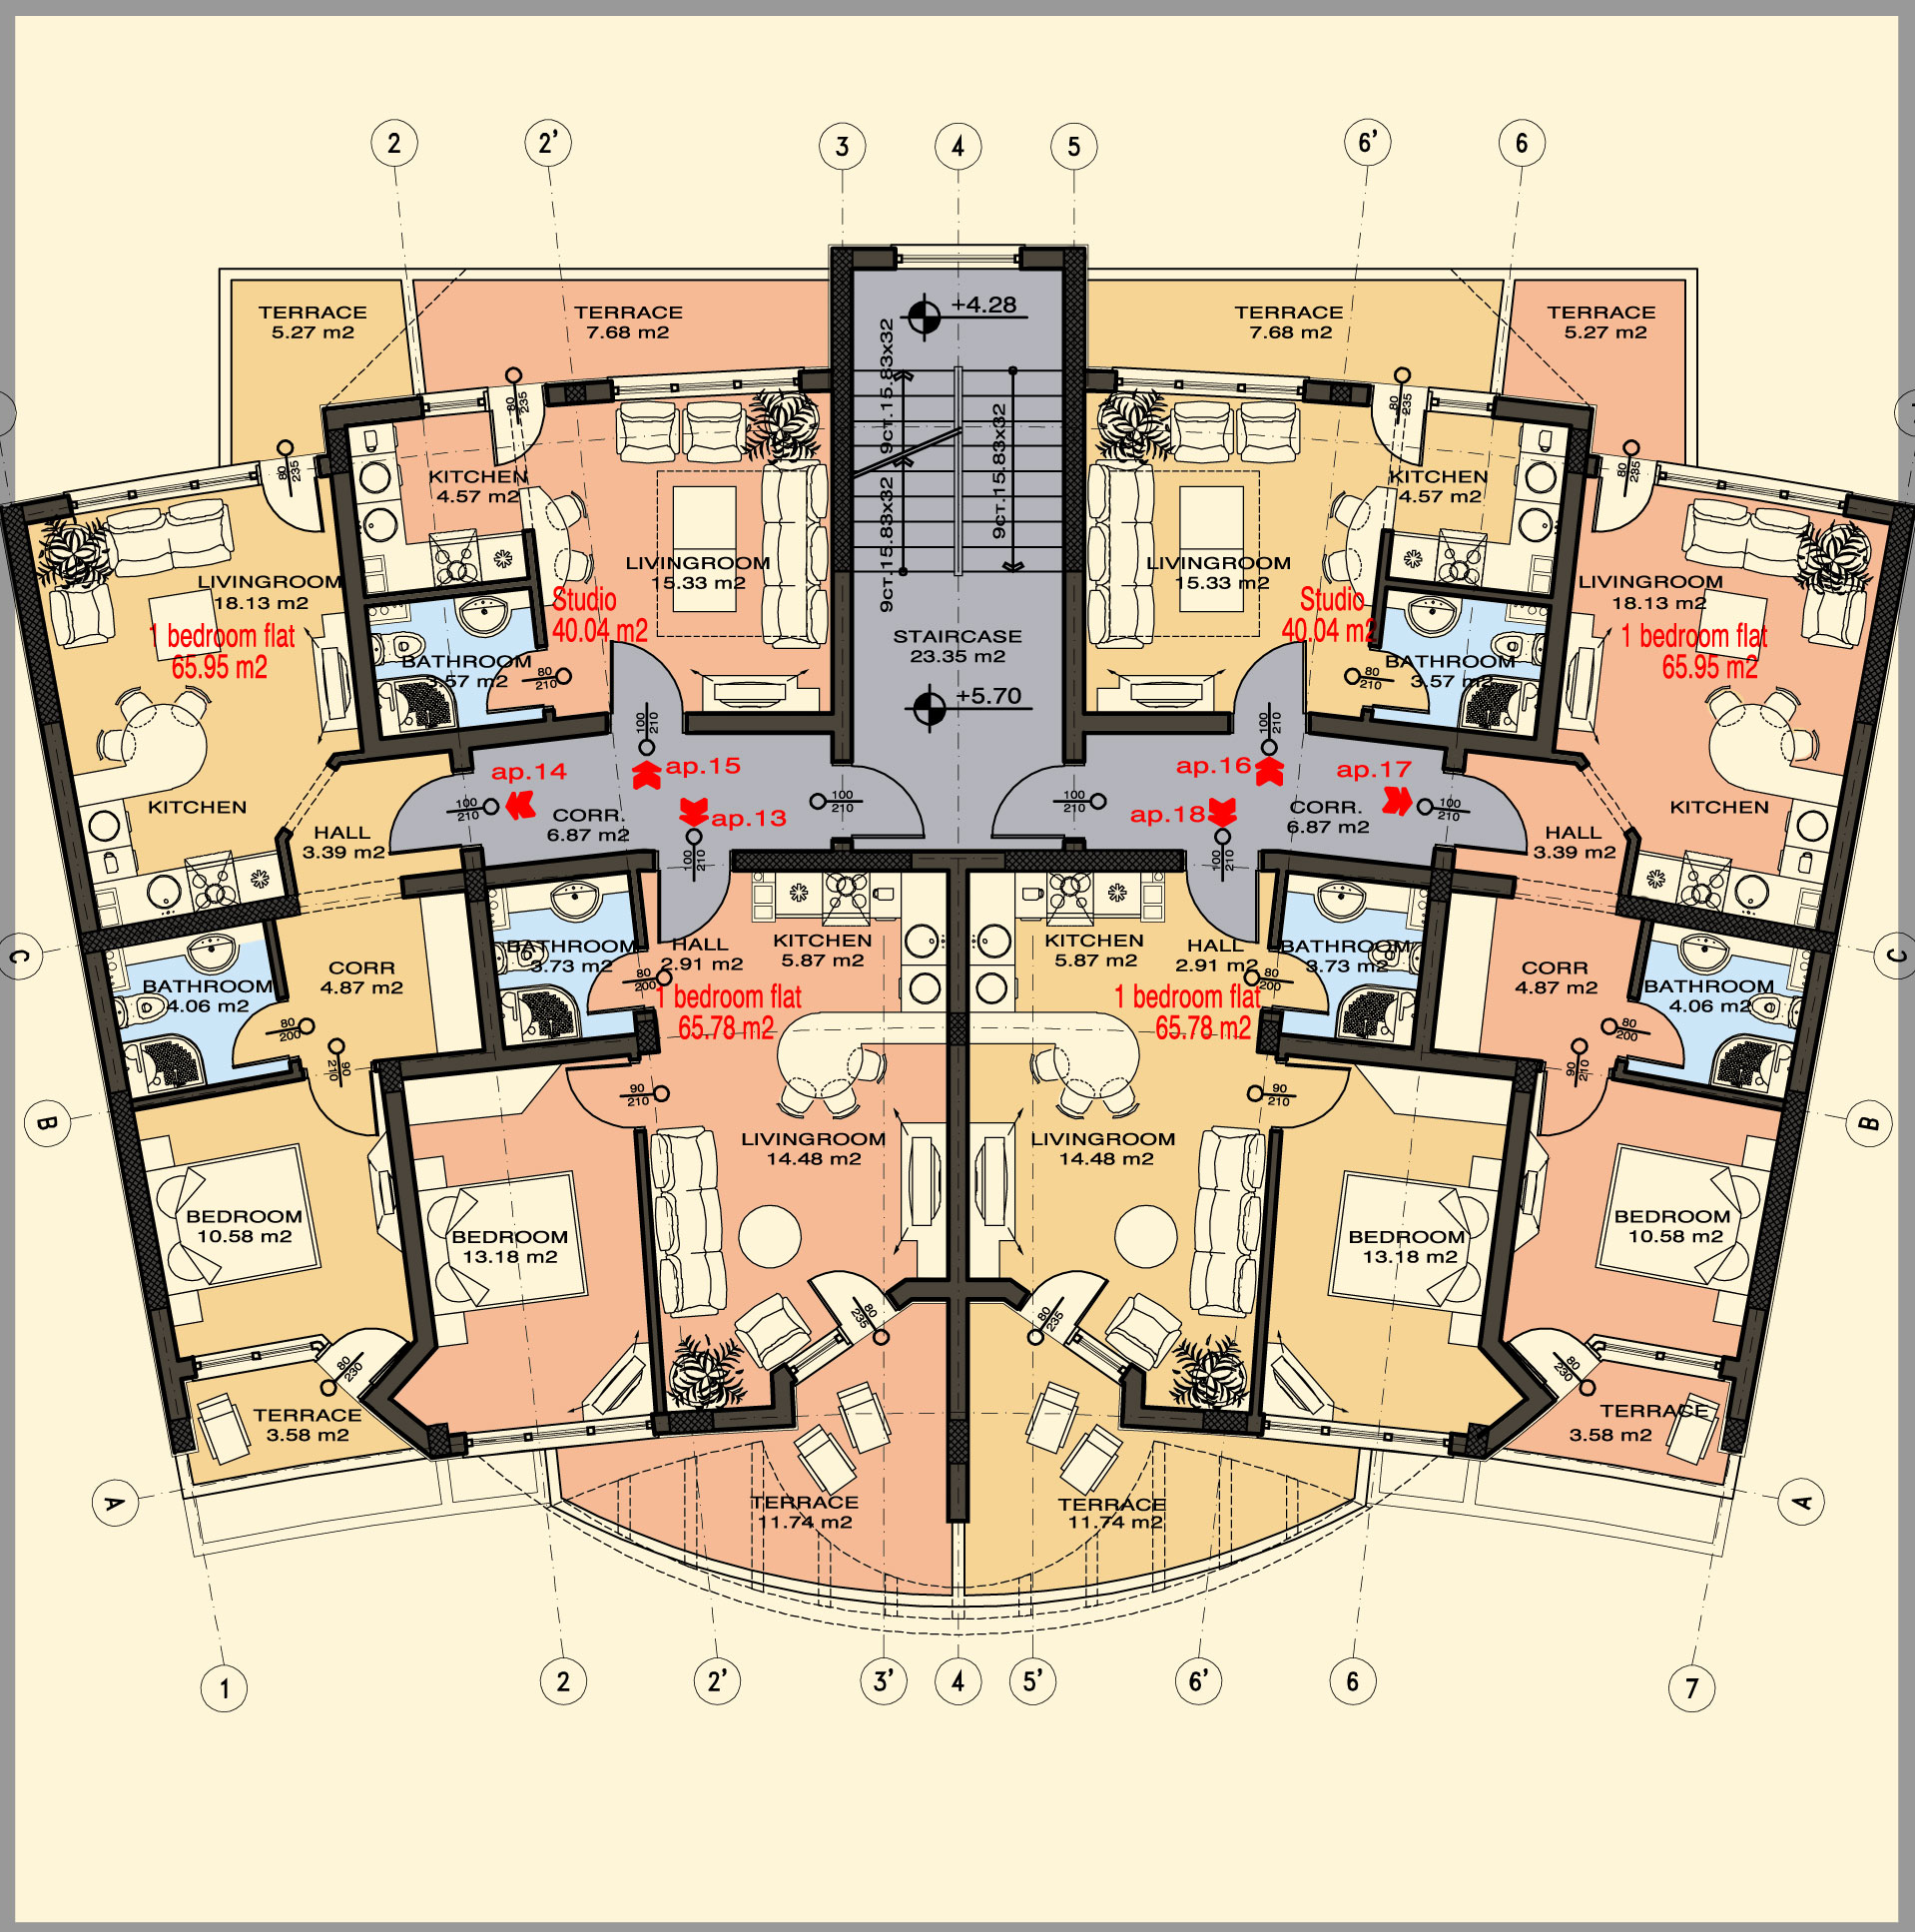 Two bedroom apartment layout plans apartment design ideas - Garage apartment floor plans ...